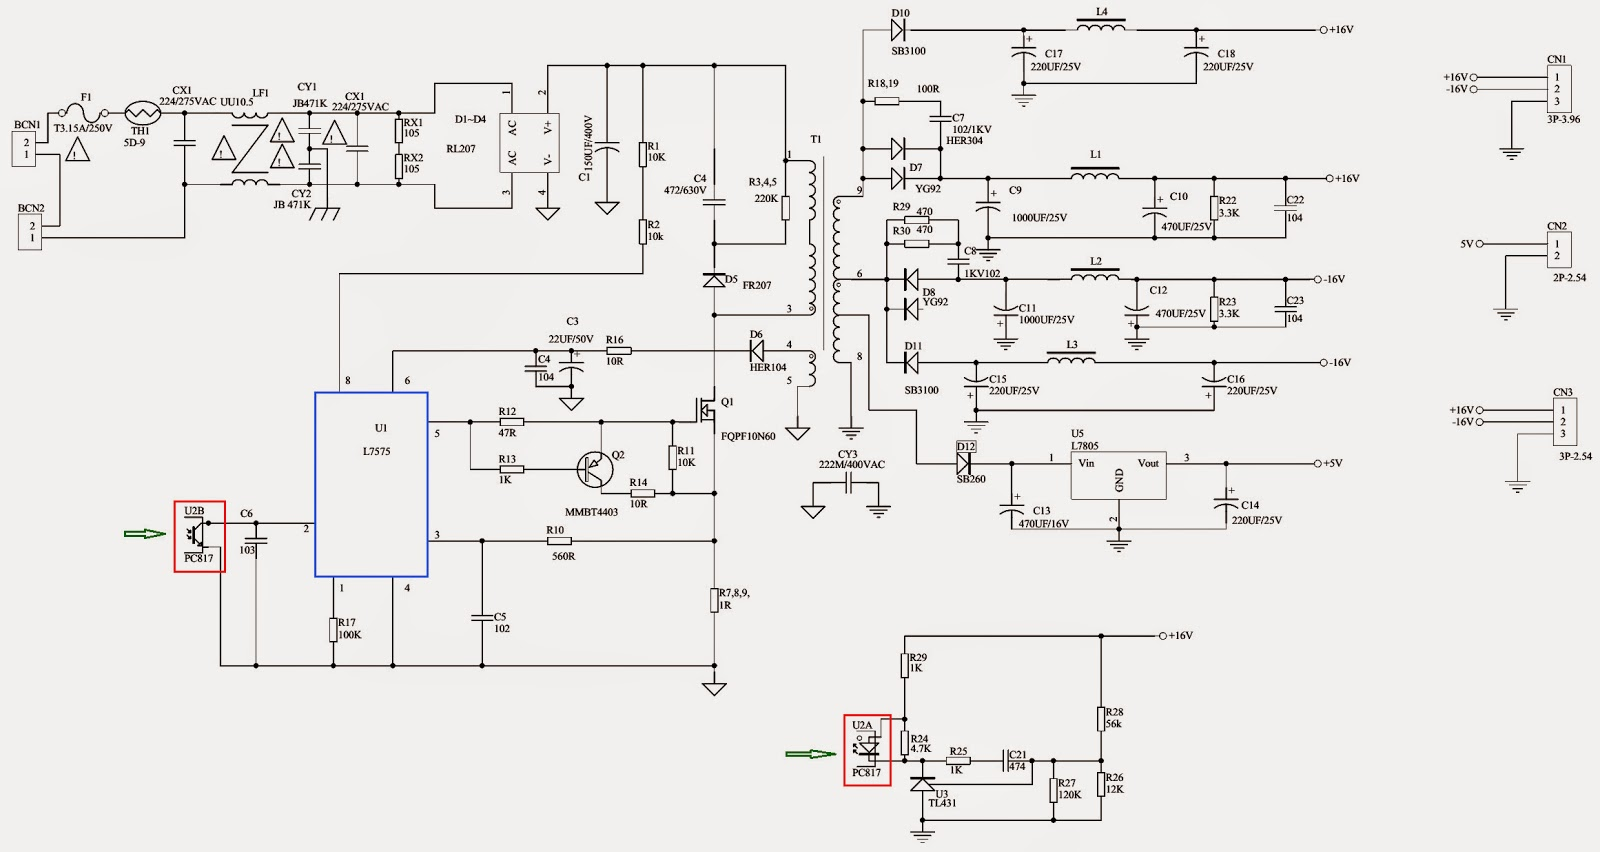 click on schematic to zoom in wiring diagram host click on the schematics to zoom in wiring diagram blog click on schematic to zoom in